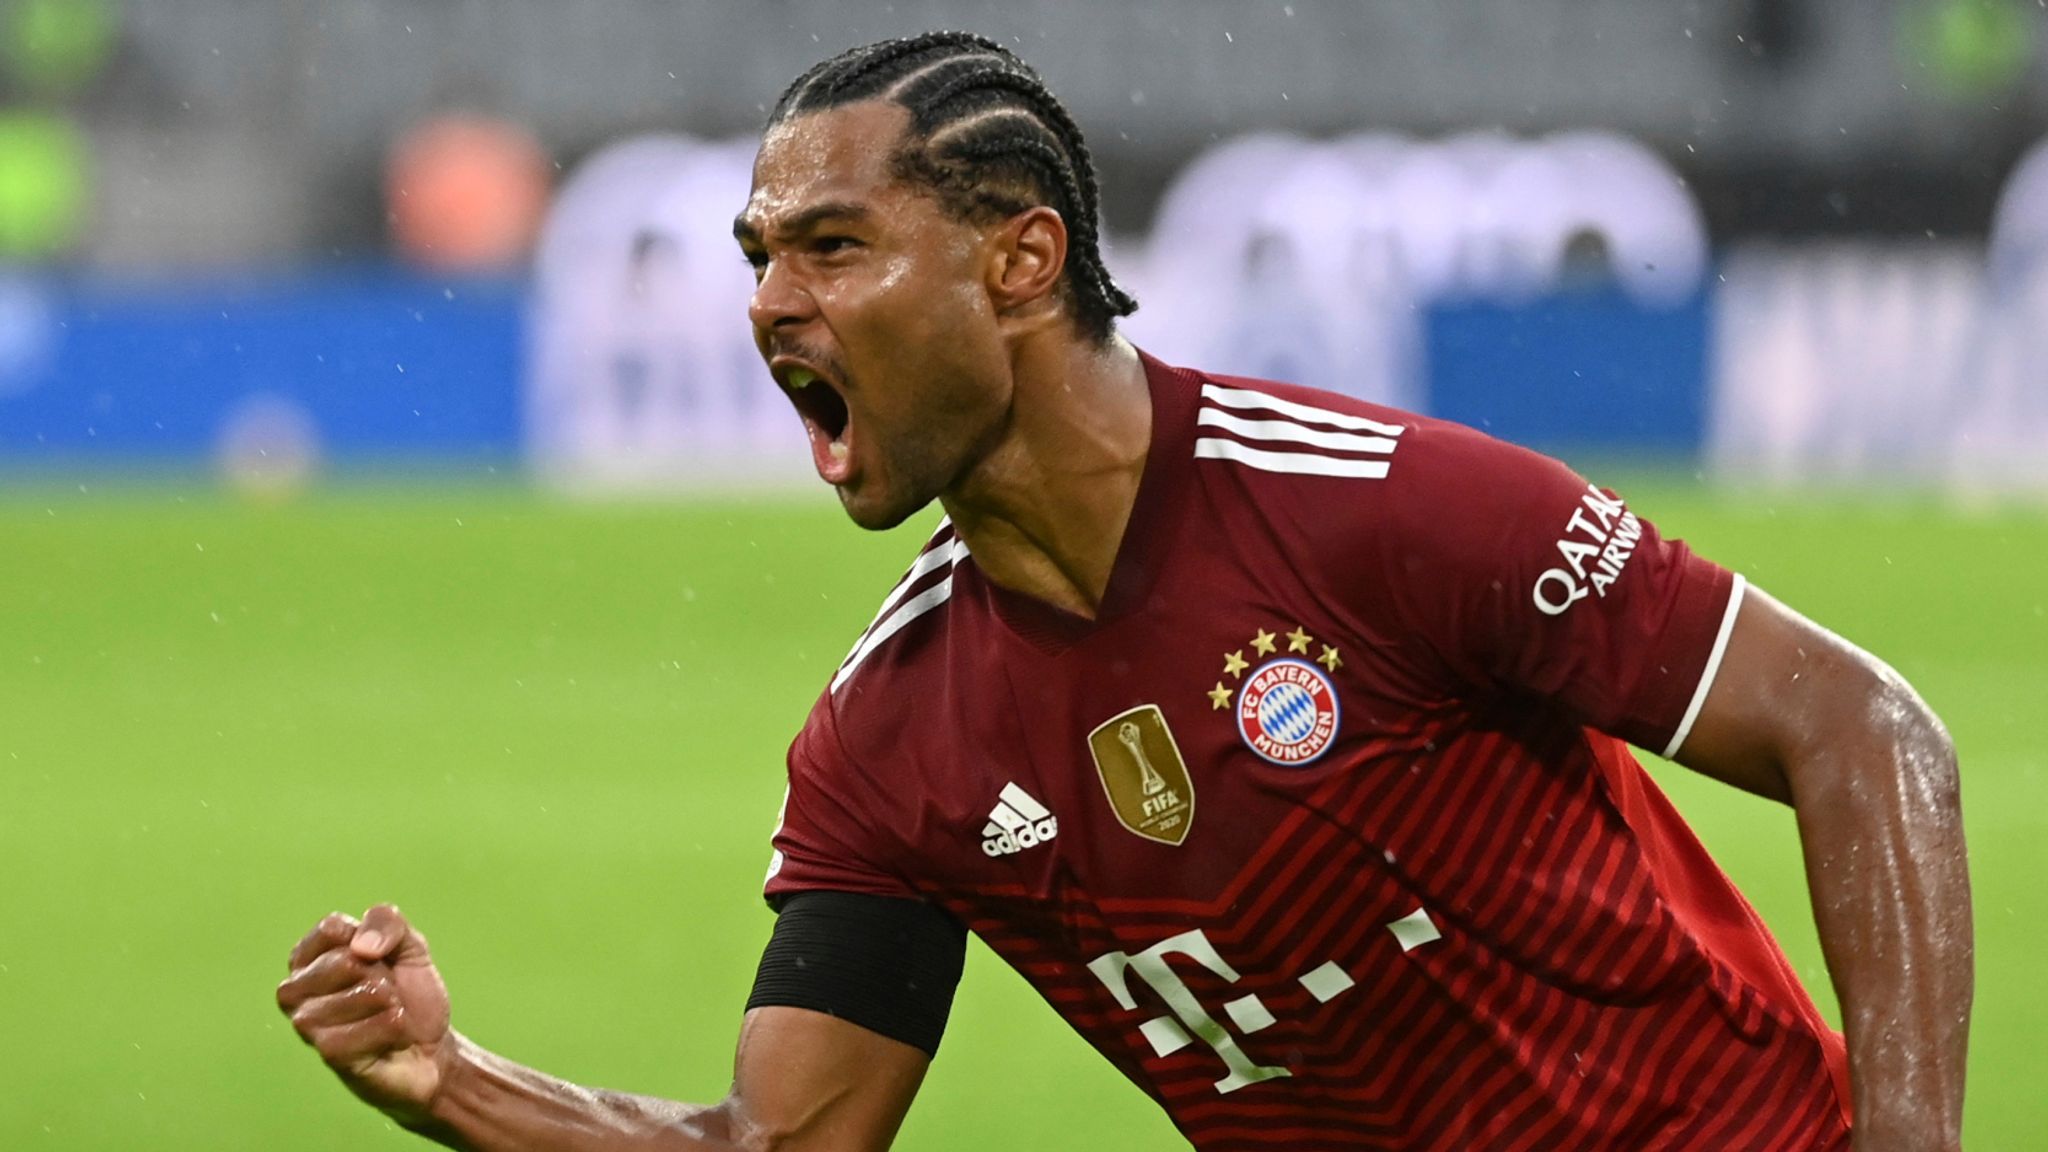 Bayern Munich edge past Cologne for first Bundesliga win - European  round-up   Football News   Sky Sports